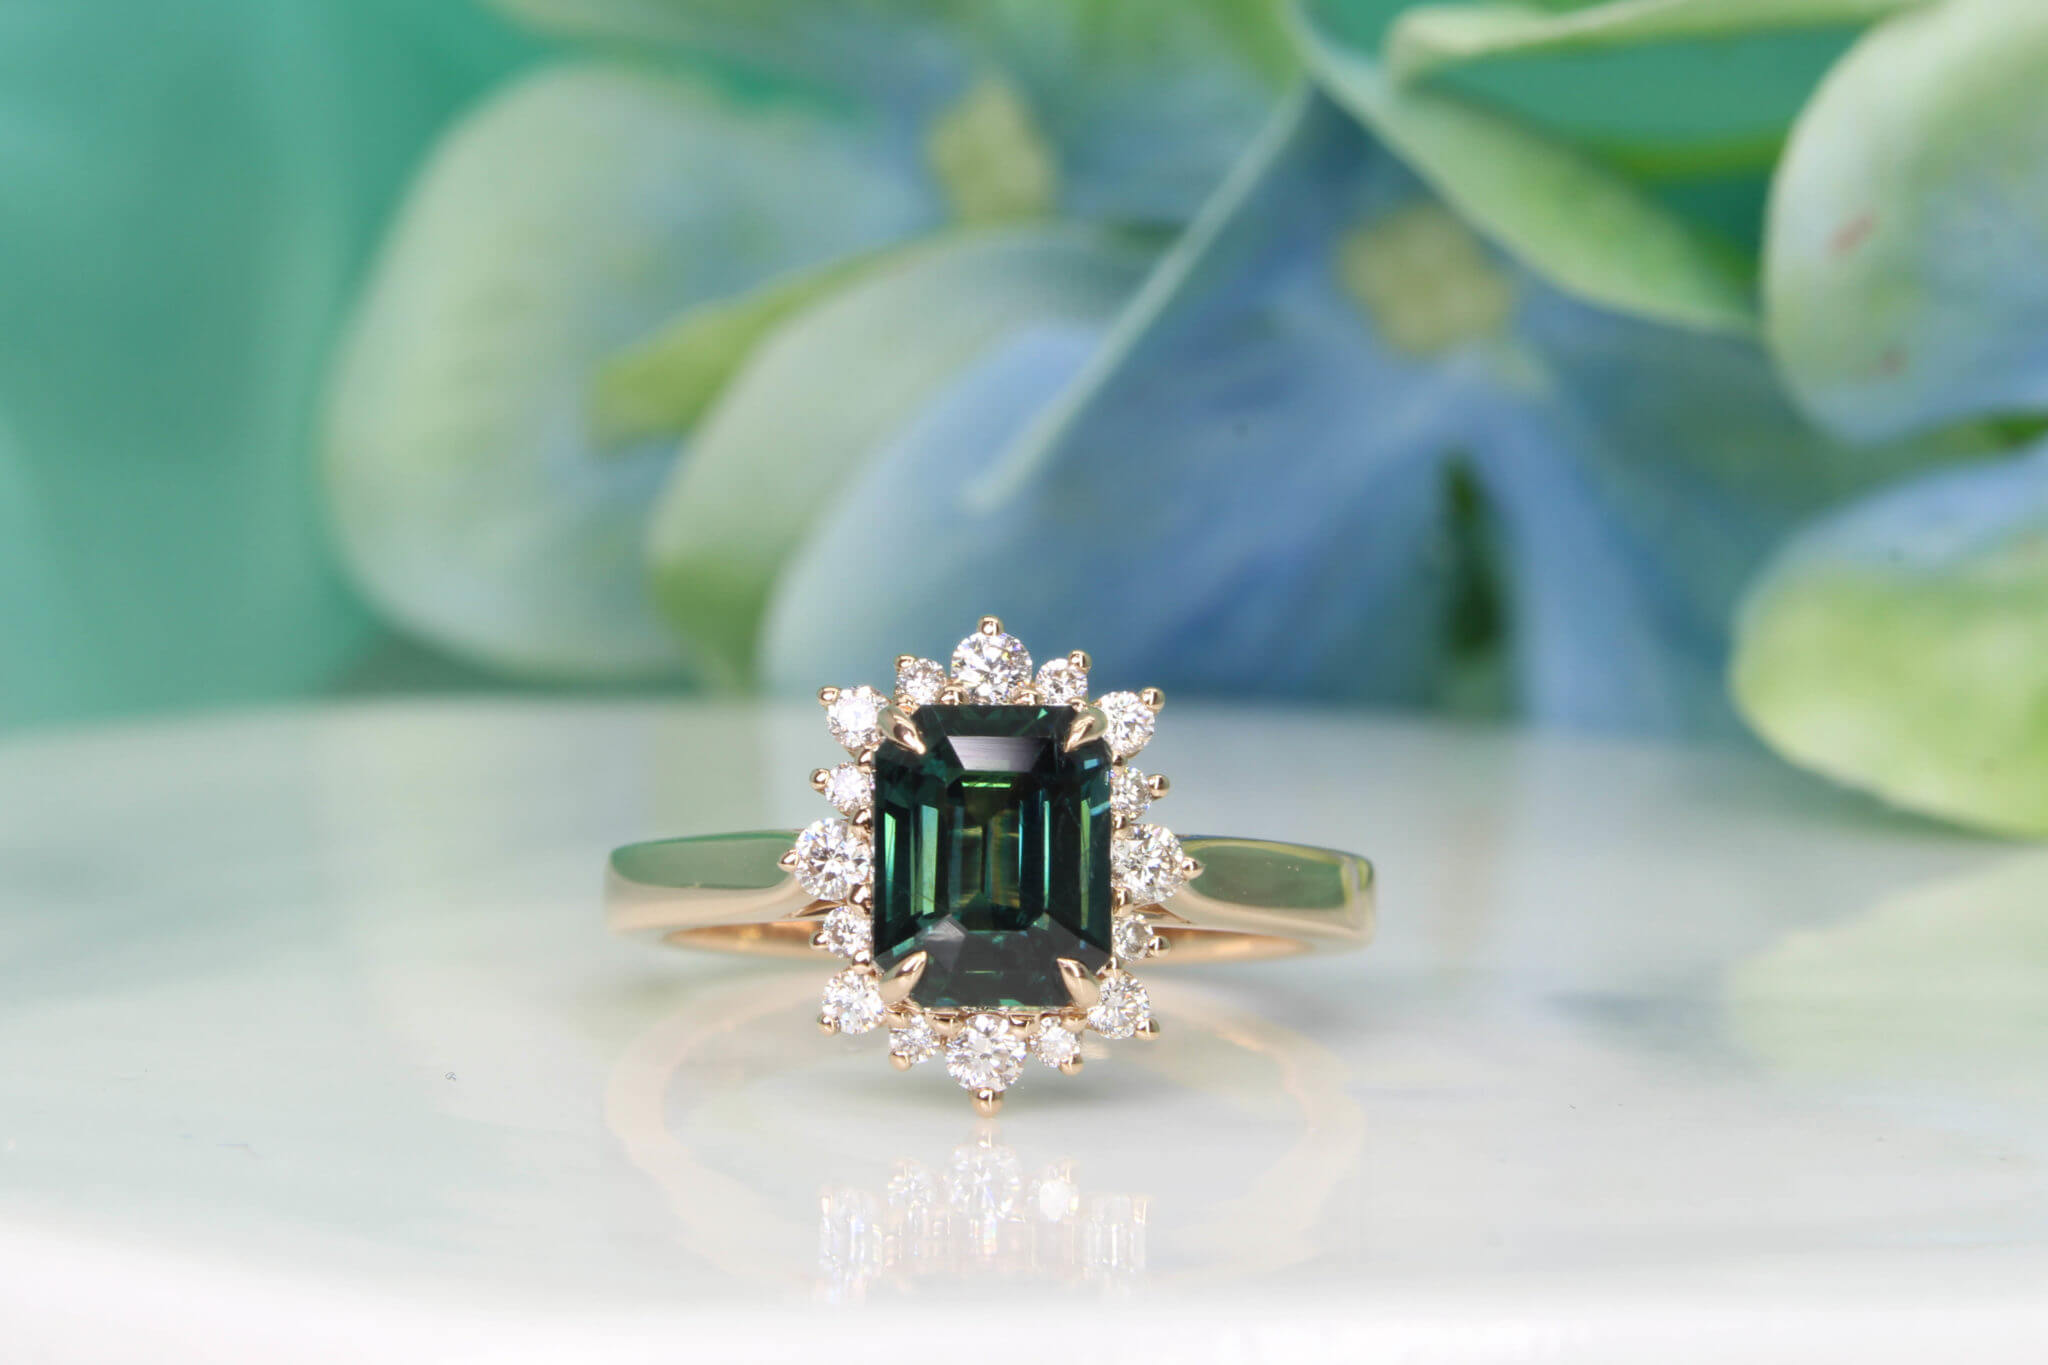 Teal Sapphire Engagement ring customised with alternate sizes diamond, gives a star burst look to the overall design.Crafted in 750 18k Rose gold bands, regal and radiant, this exquisite engagement ring was crafted to perfection | Customised Engagement Ring Teal Sapphire Singapore